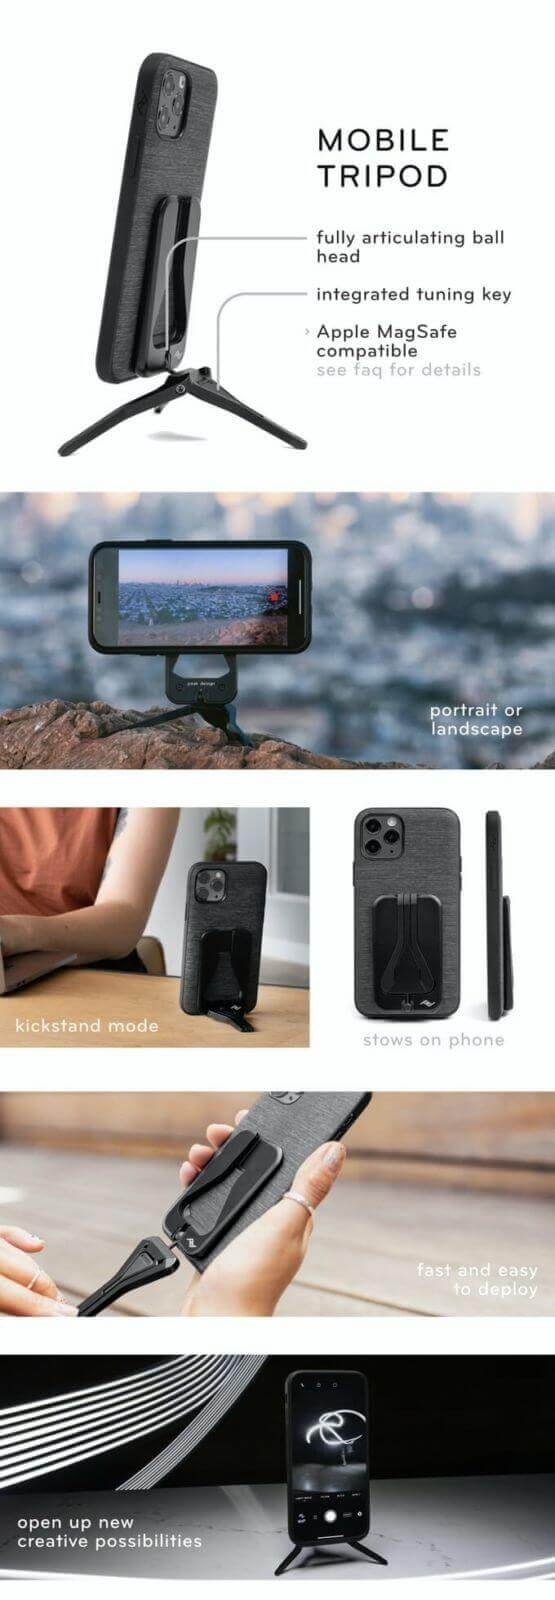 Peak Design Mobile Tripod